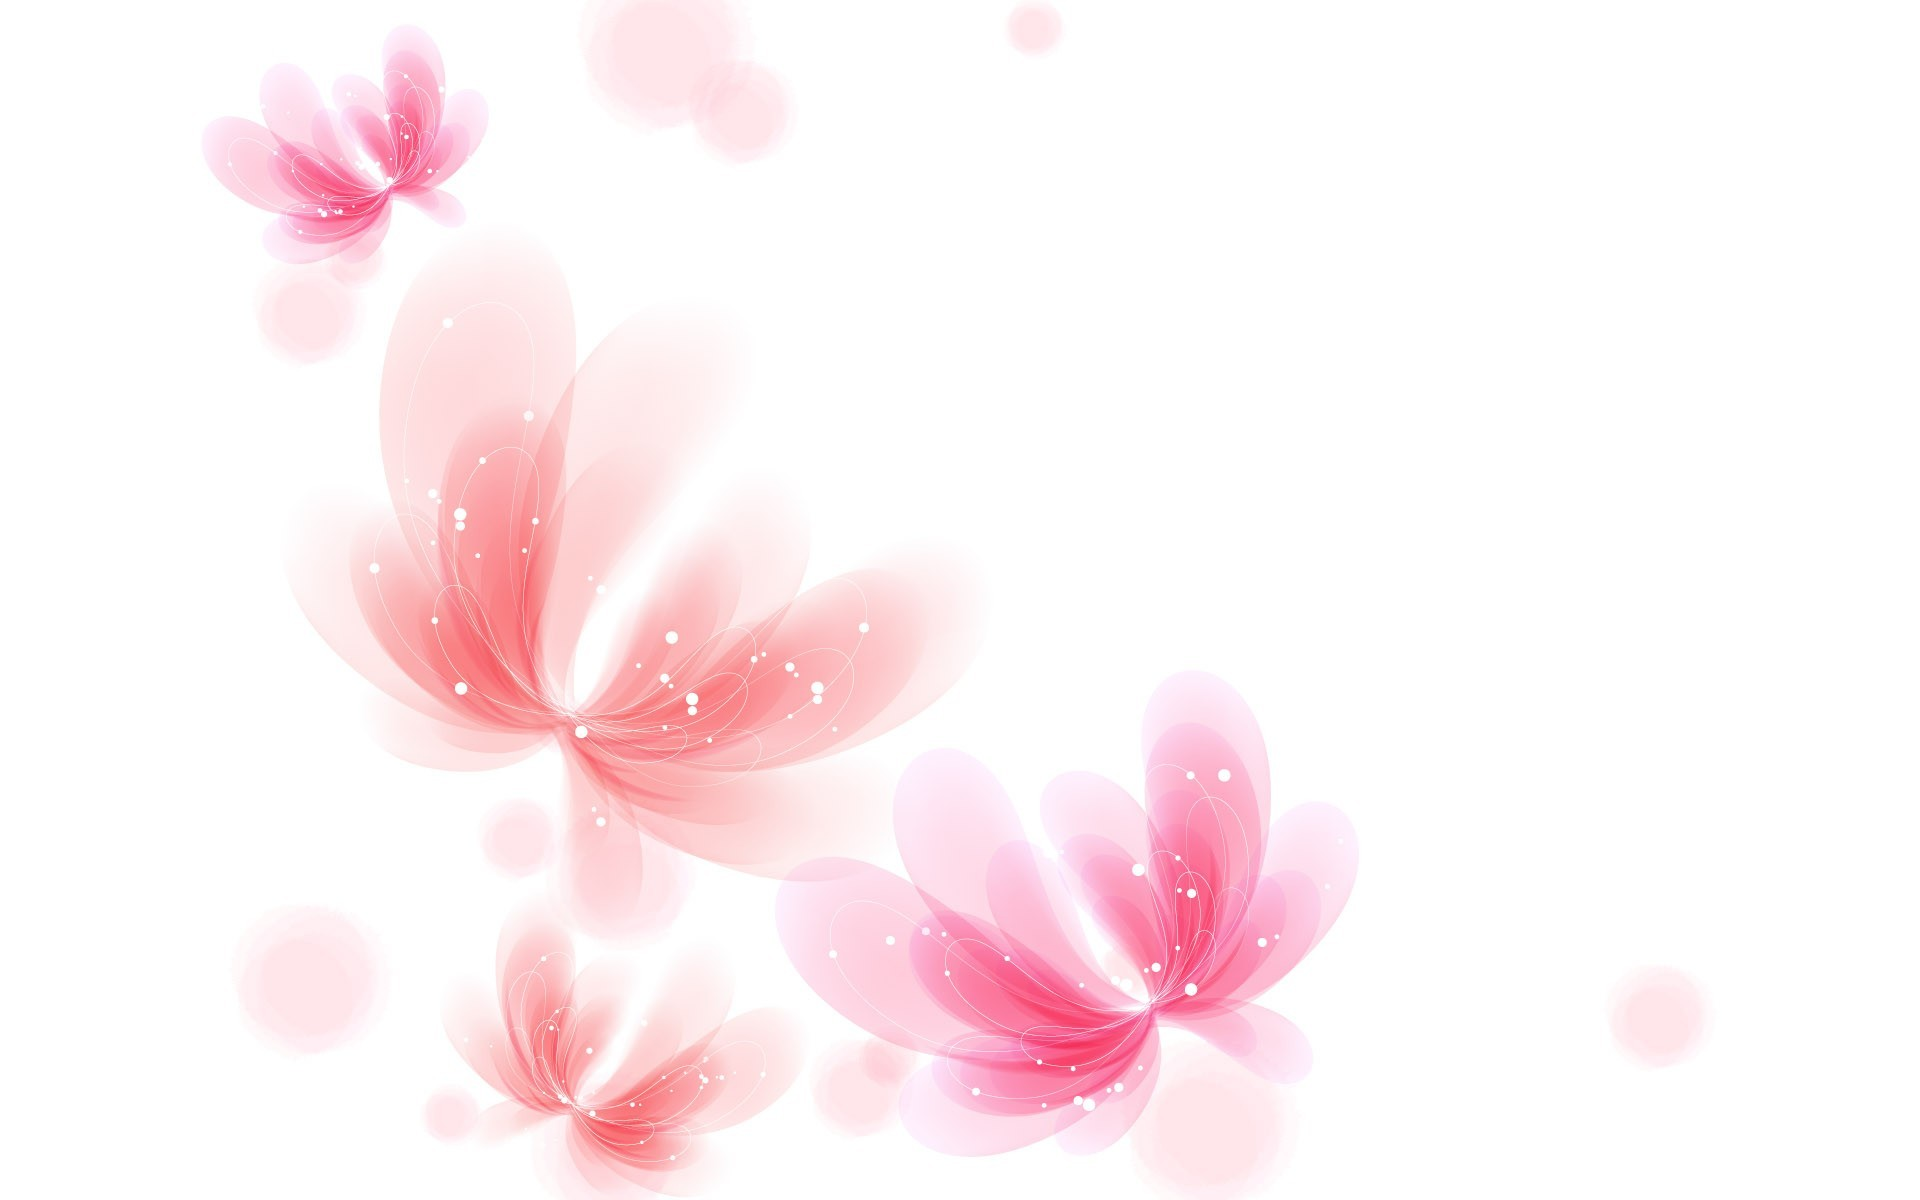 1920x1200 Pink and White Wallpaper